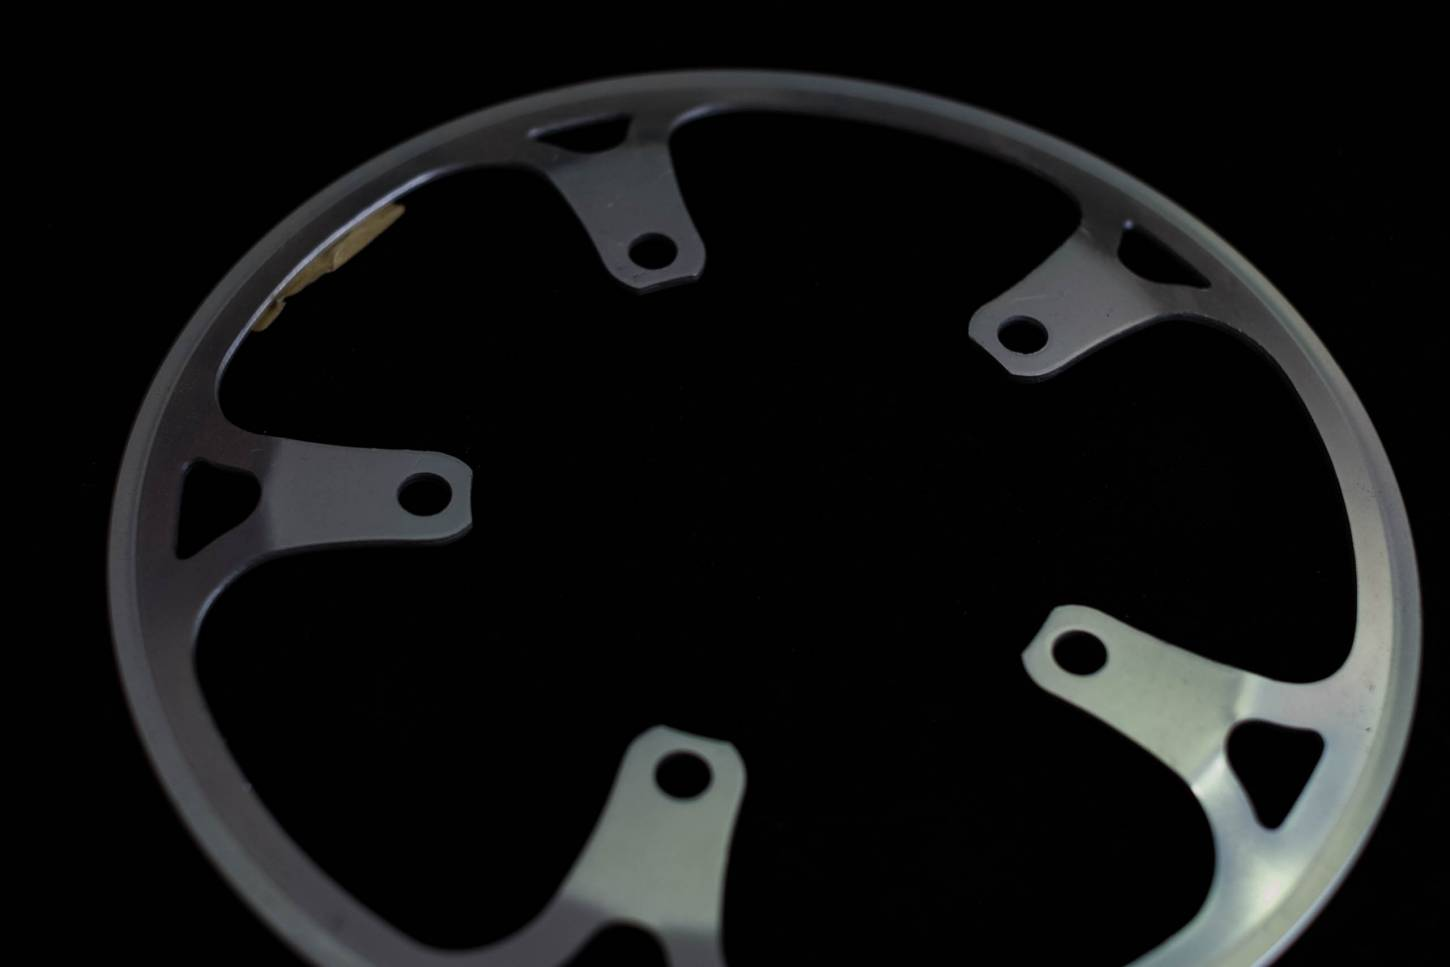 Sugino, Kettenschutzring, 48 Z, Chainring, Protection, Ring, LK 110, Guard 48 T